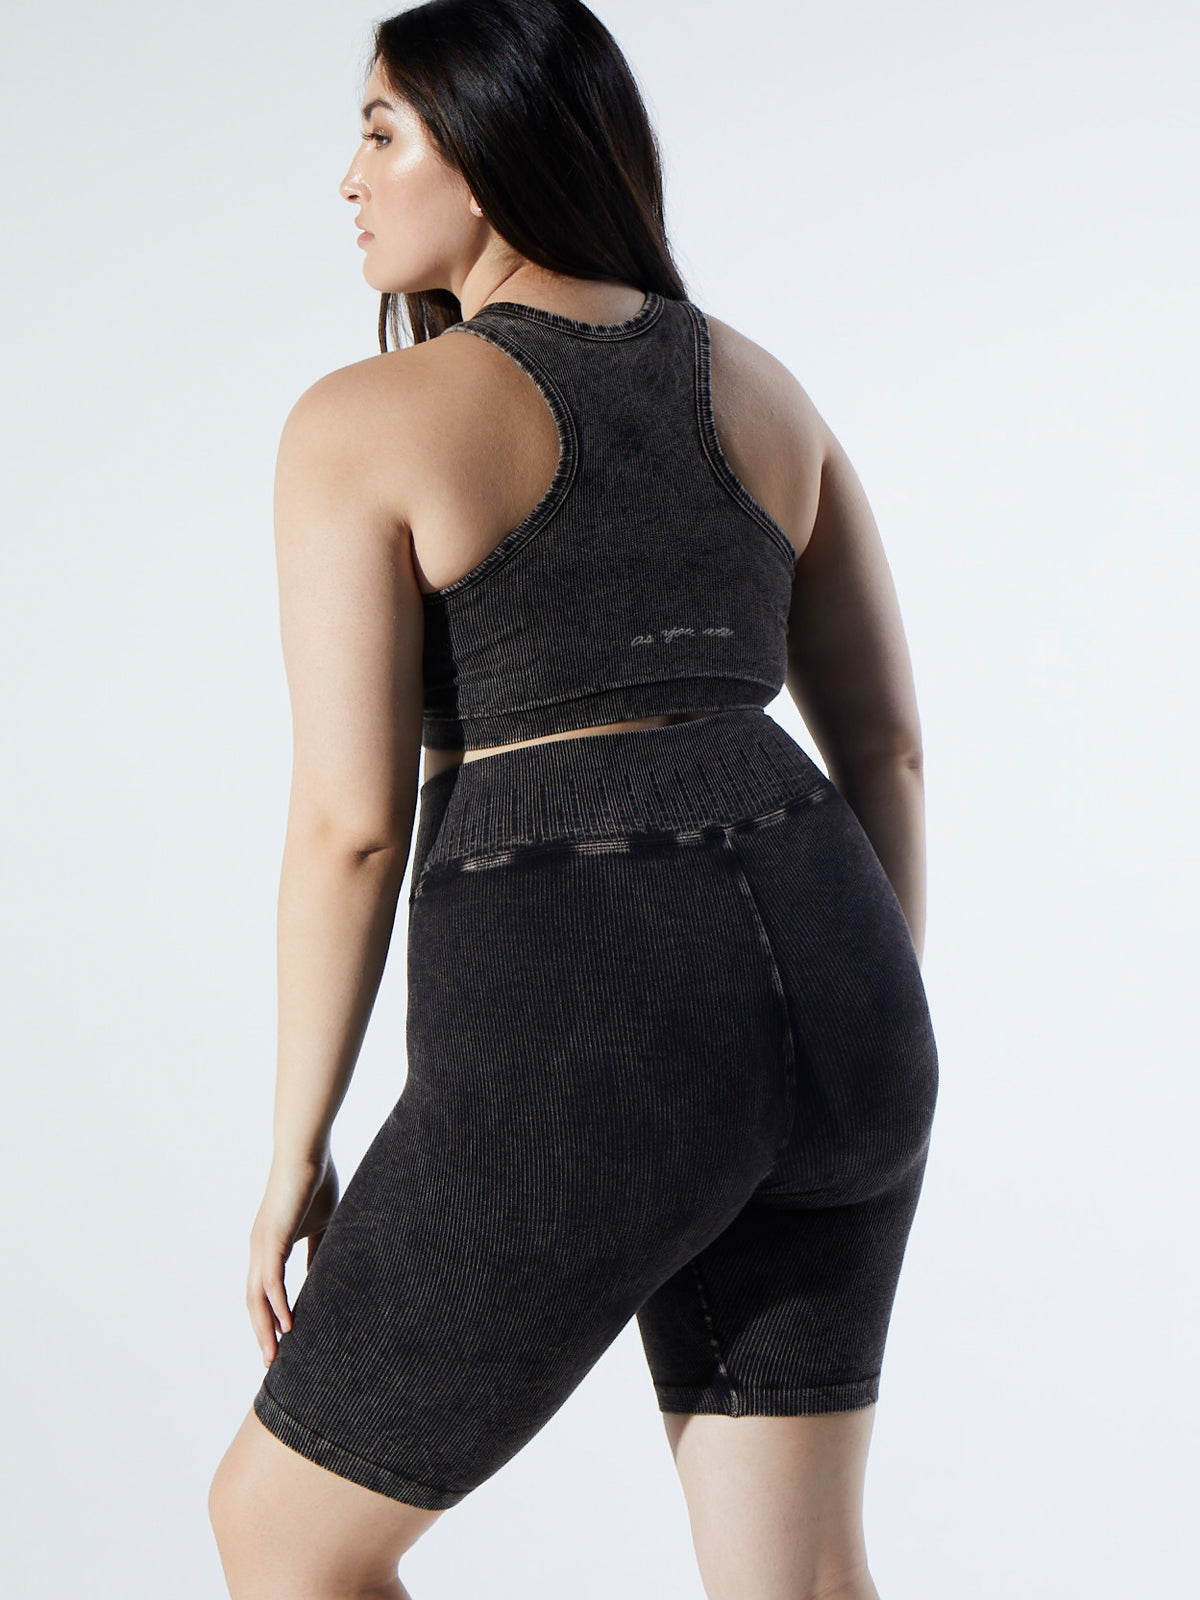 Rachel Rib Racer Crop in Vintage Black